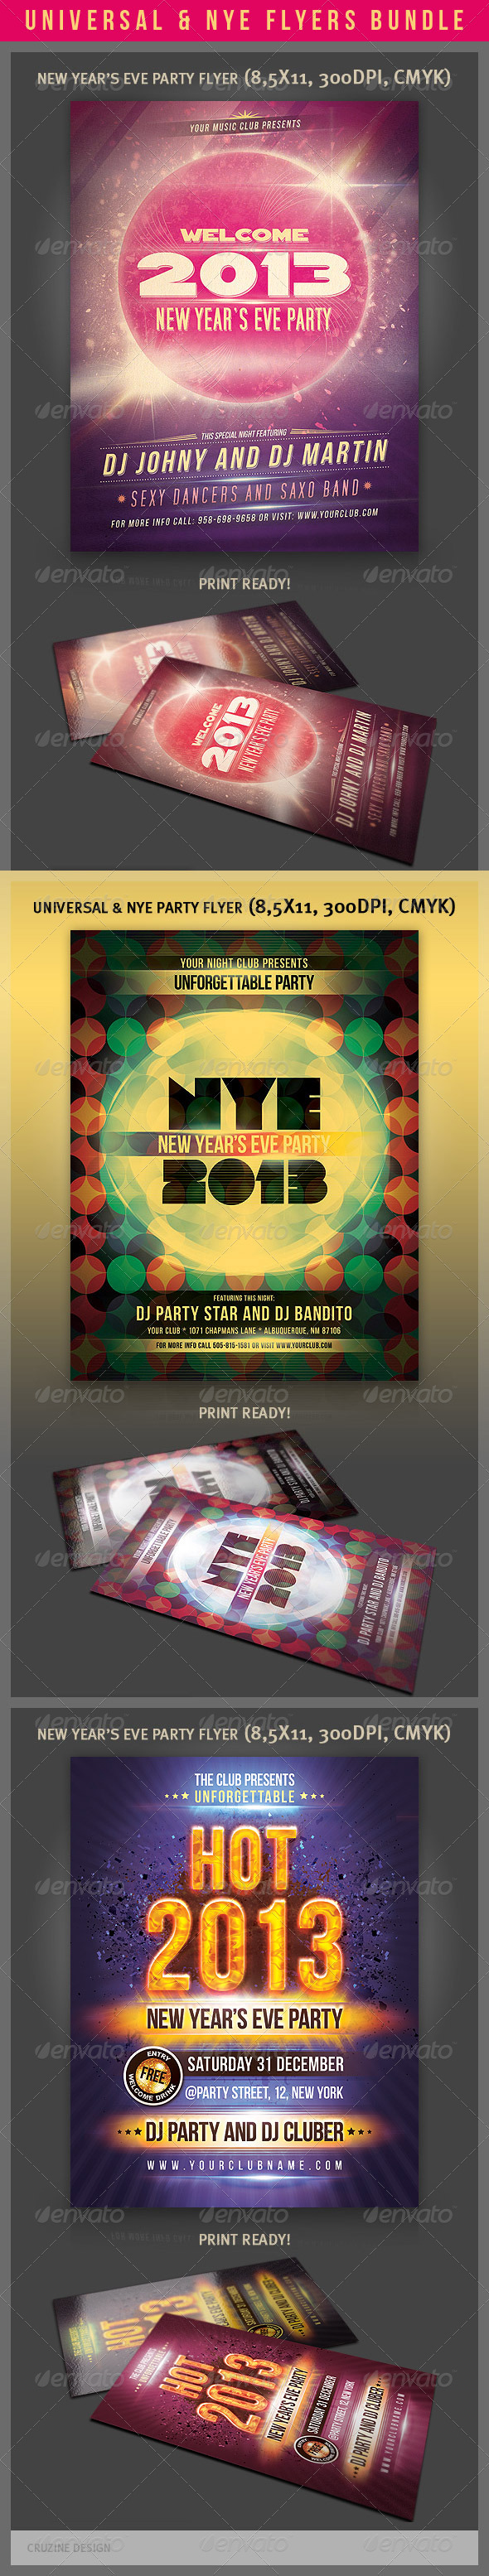 Universal & NYE Party Flyers Bundle - Clubs & Parties Events